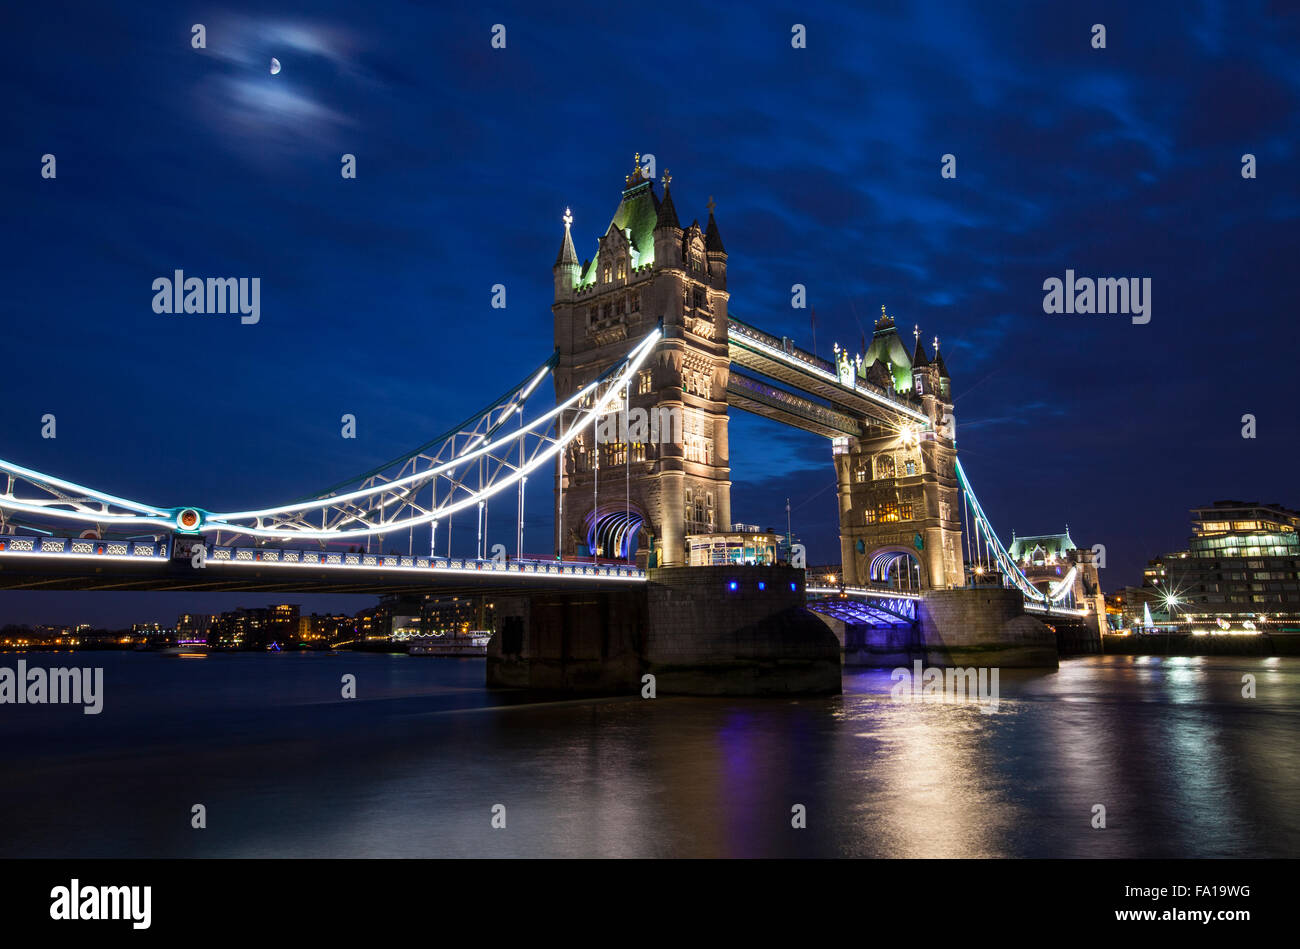 A dusk-time view of the magnificent Tower Bridge spanning over the River Thames in London. - Stock Image